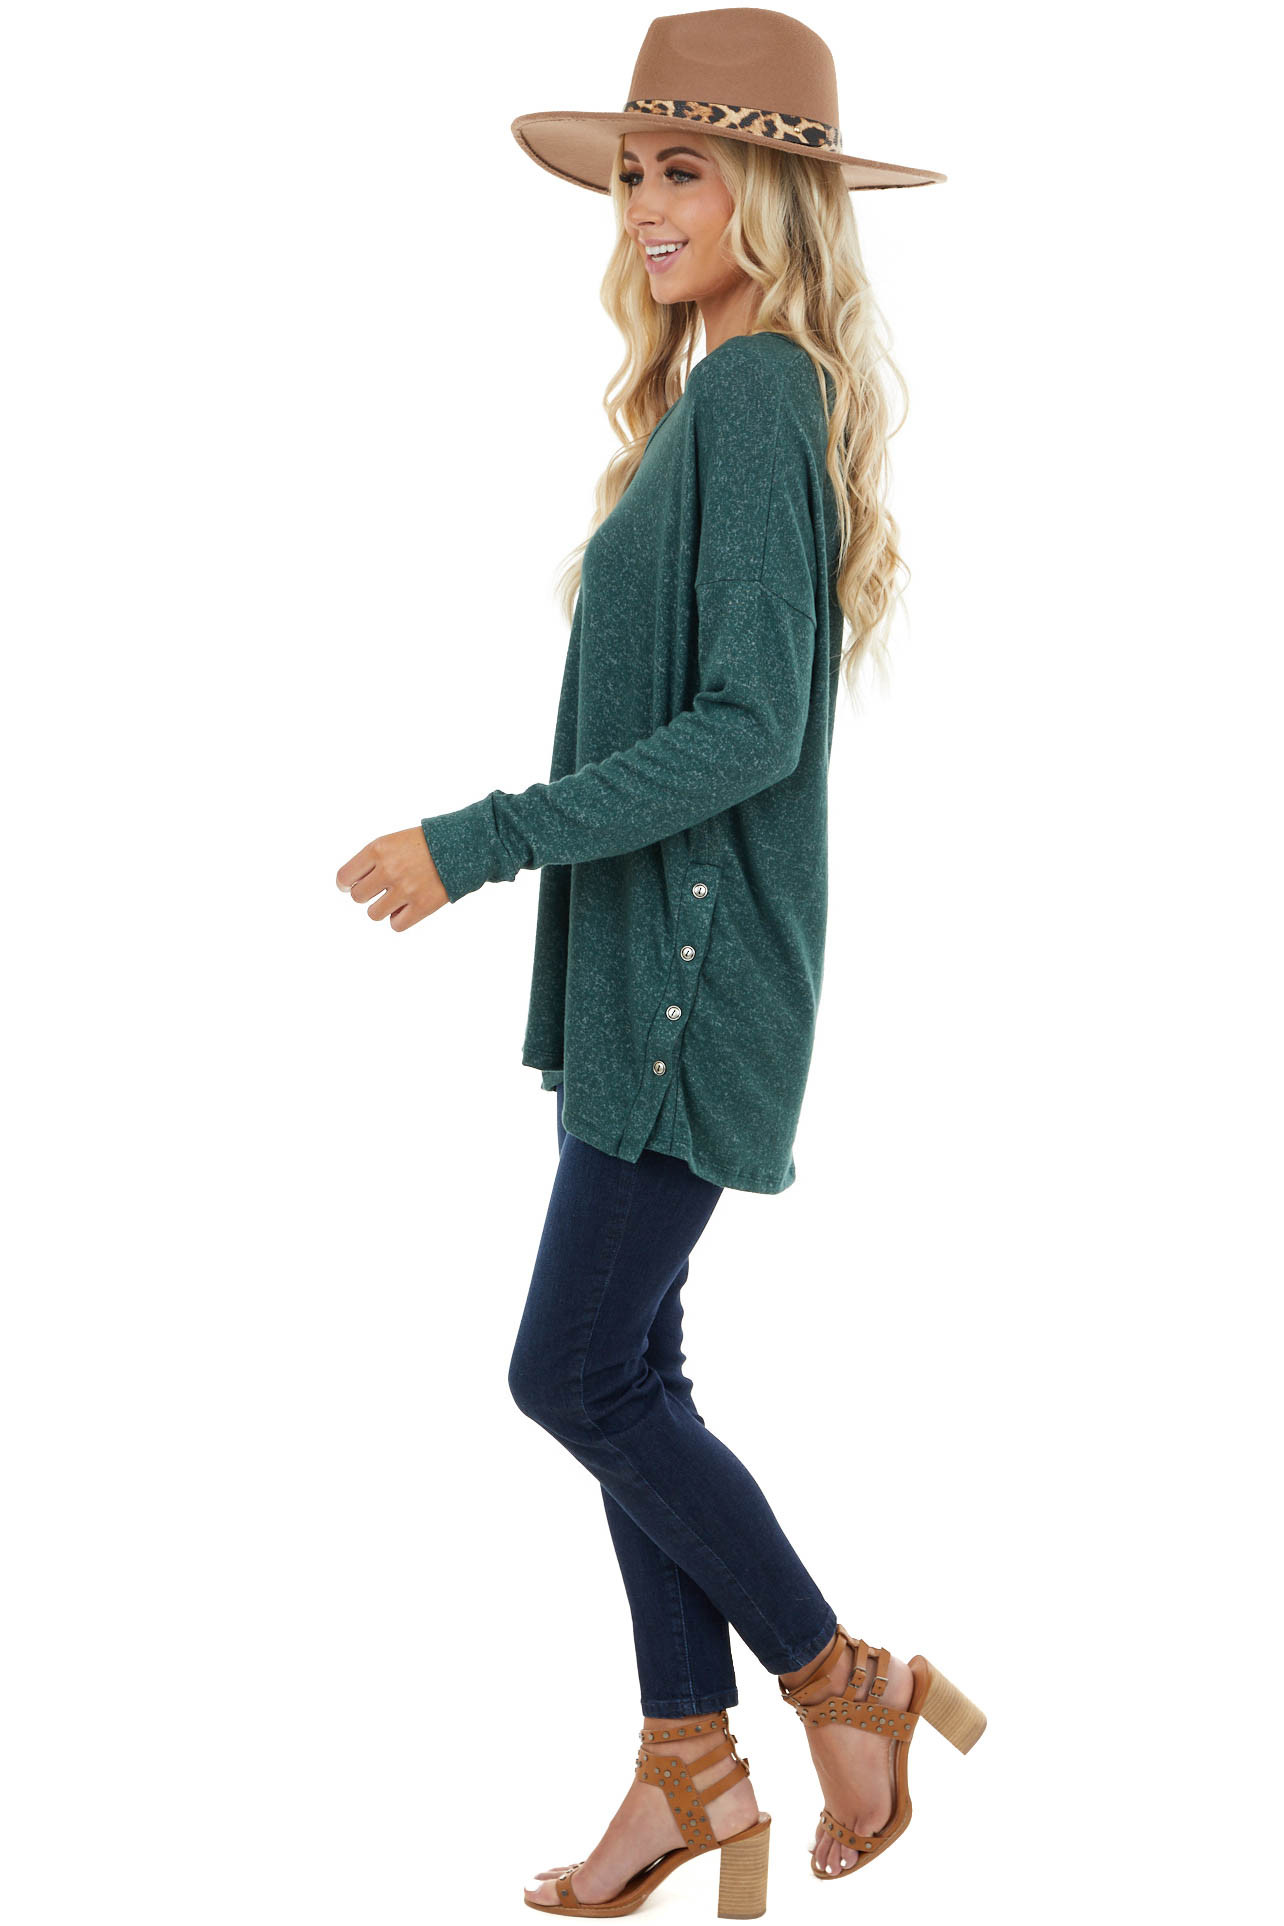 Heathered Forest Green Knit Top with Side Slits and Buttons